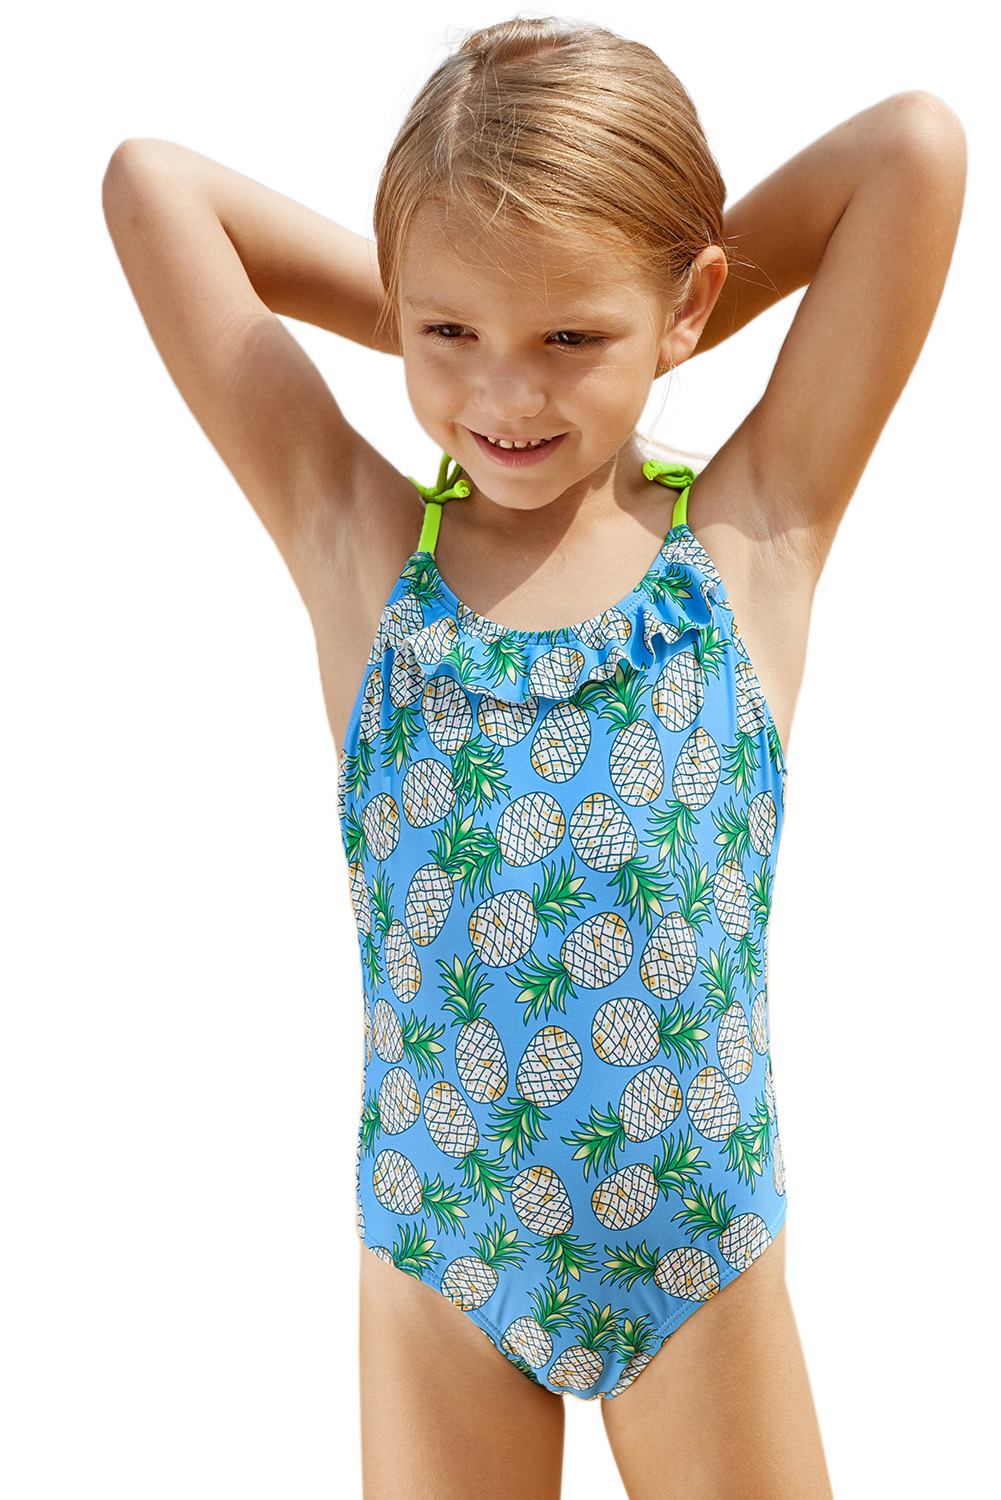 Girl model bathing suit pictures 12